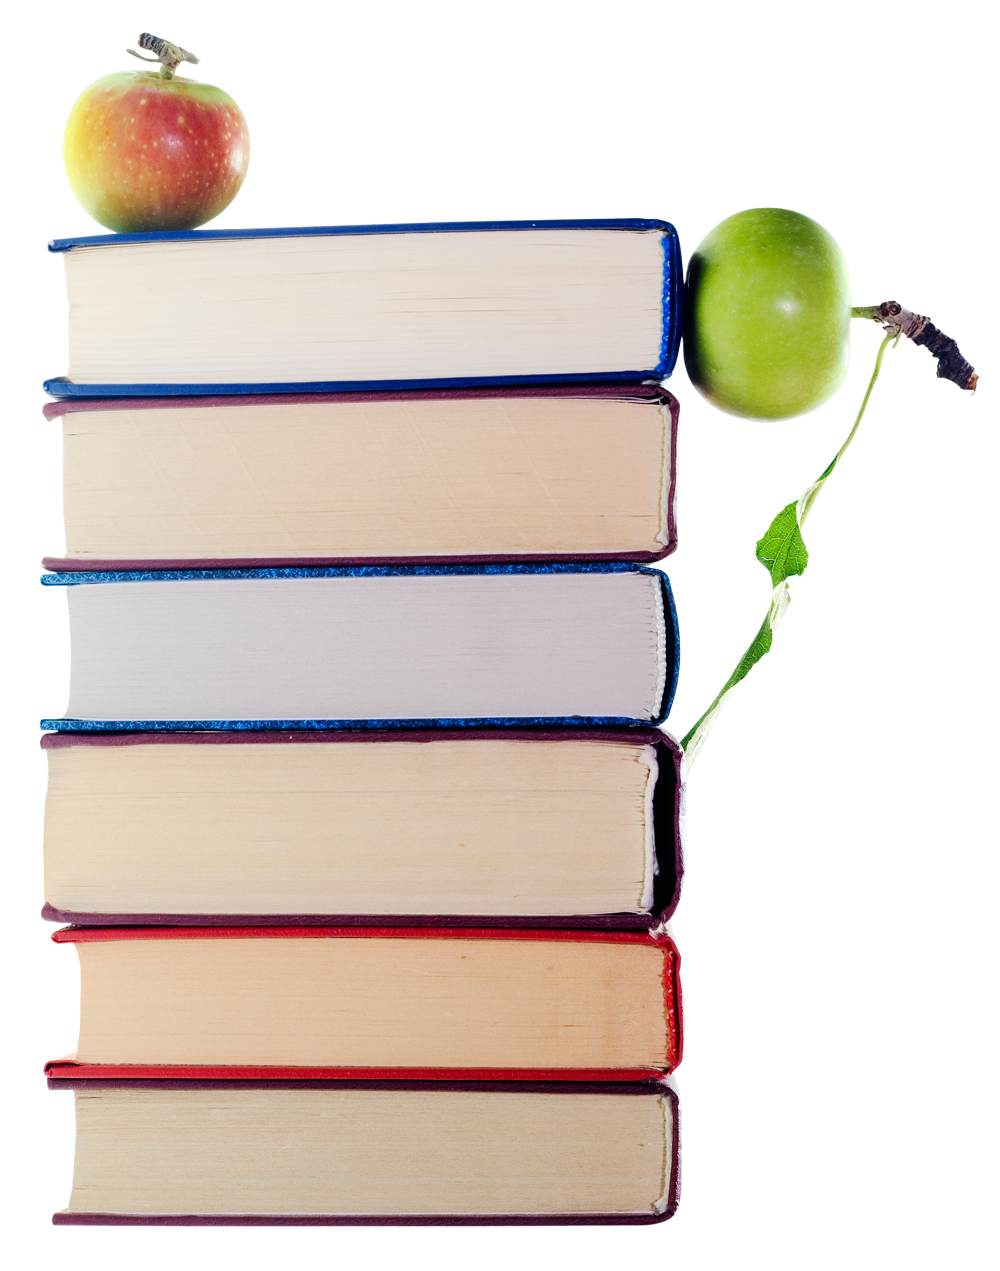 Clipart apple and books picture Green Apples in Stack of Books PNG Image - PurePNG | Free ... picture